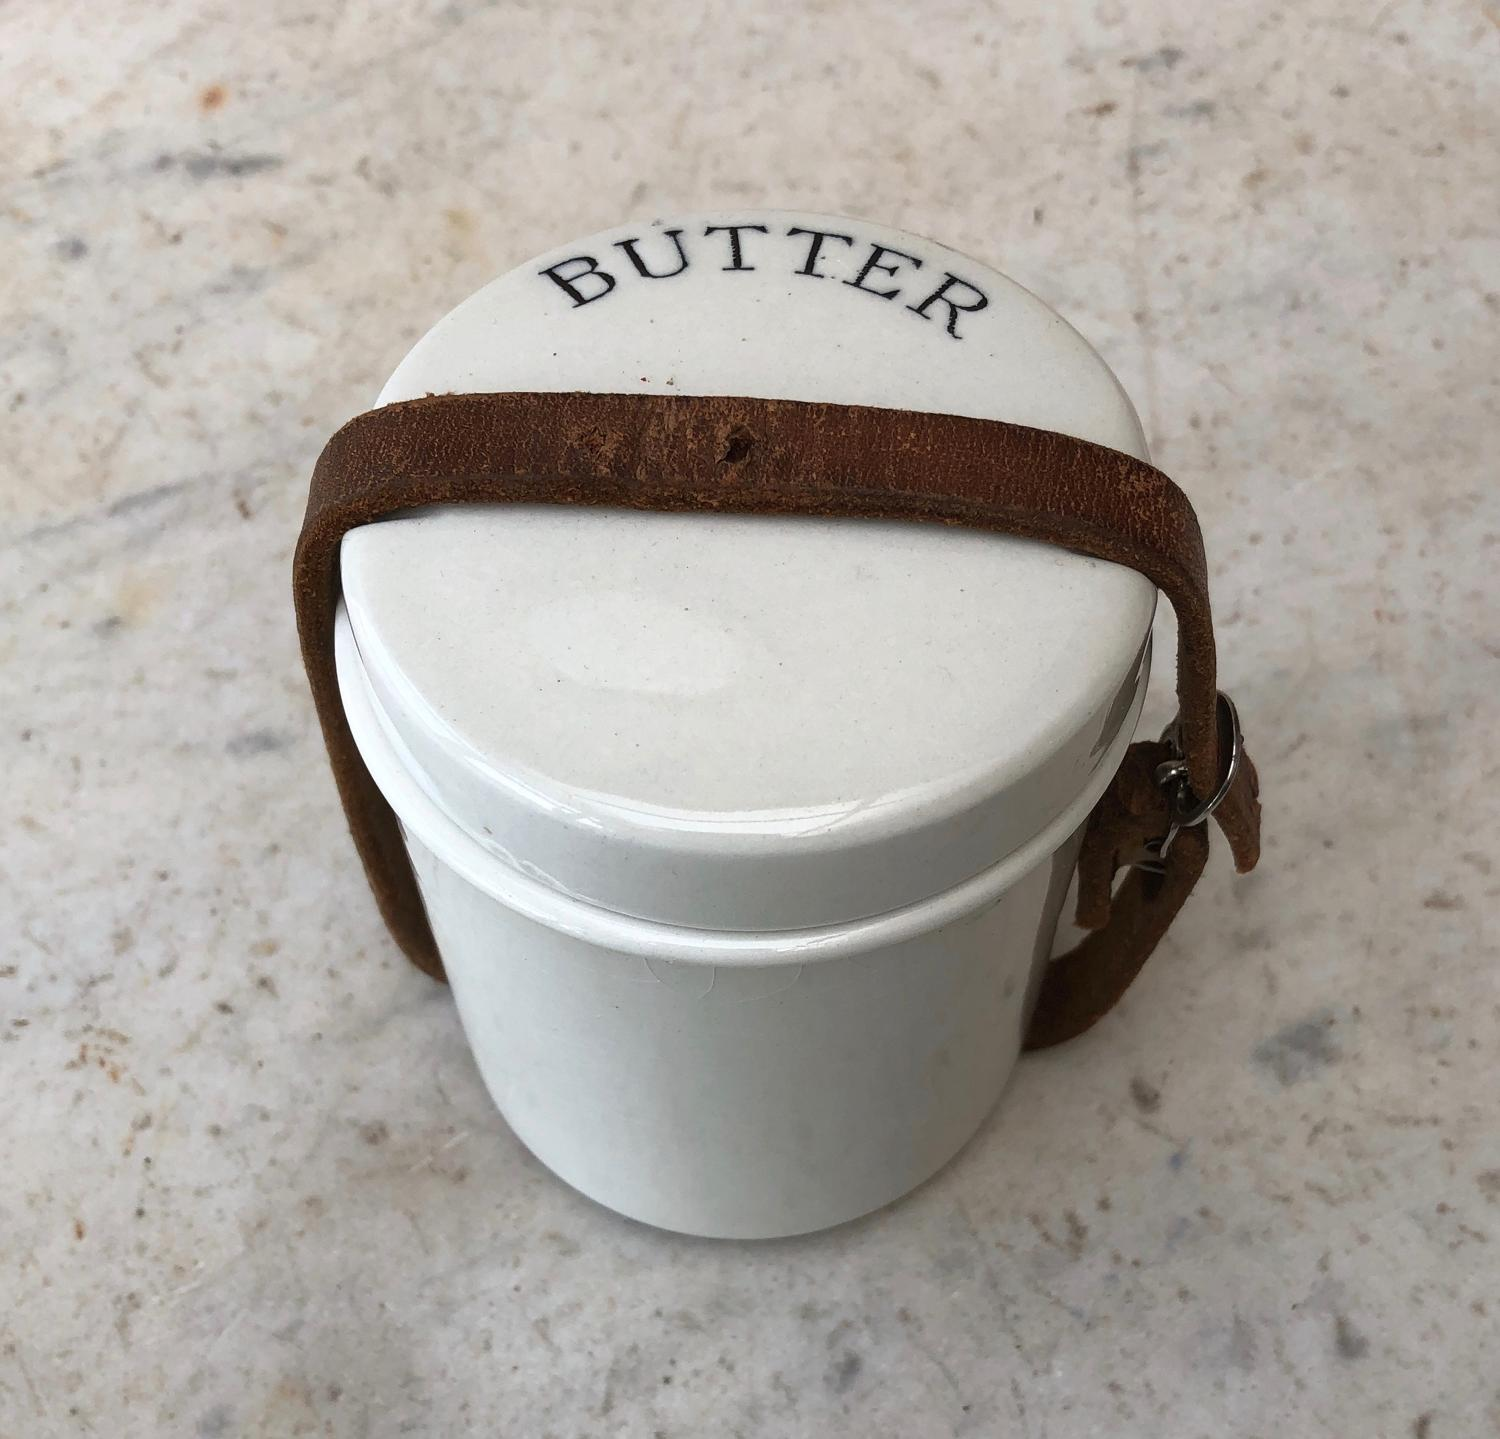 Edwardian White Ironstone Butter Pot with Original Leather Strap